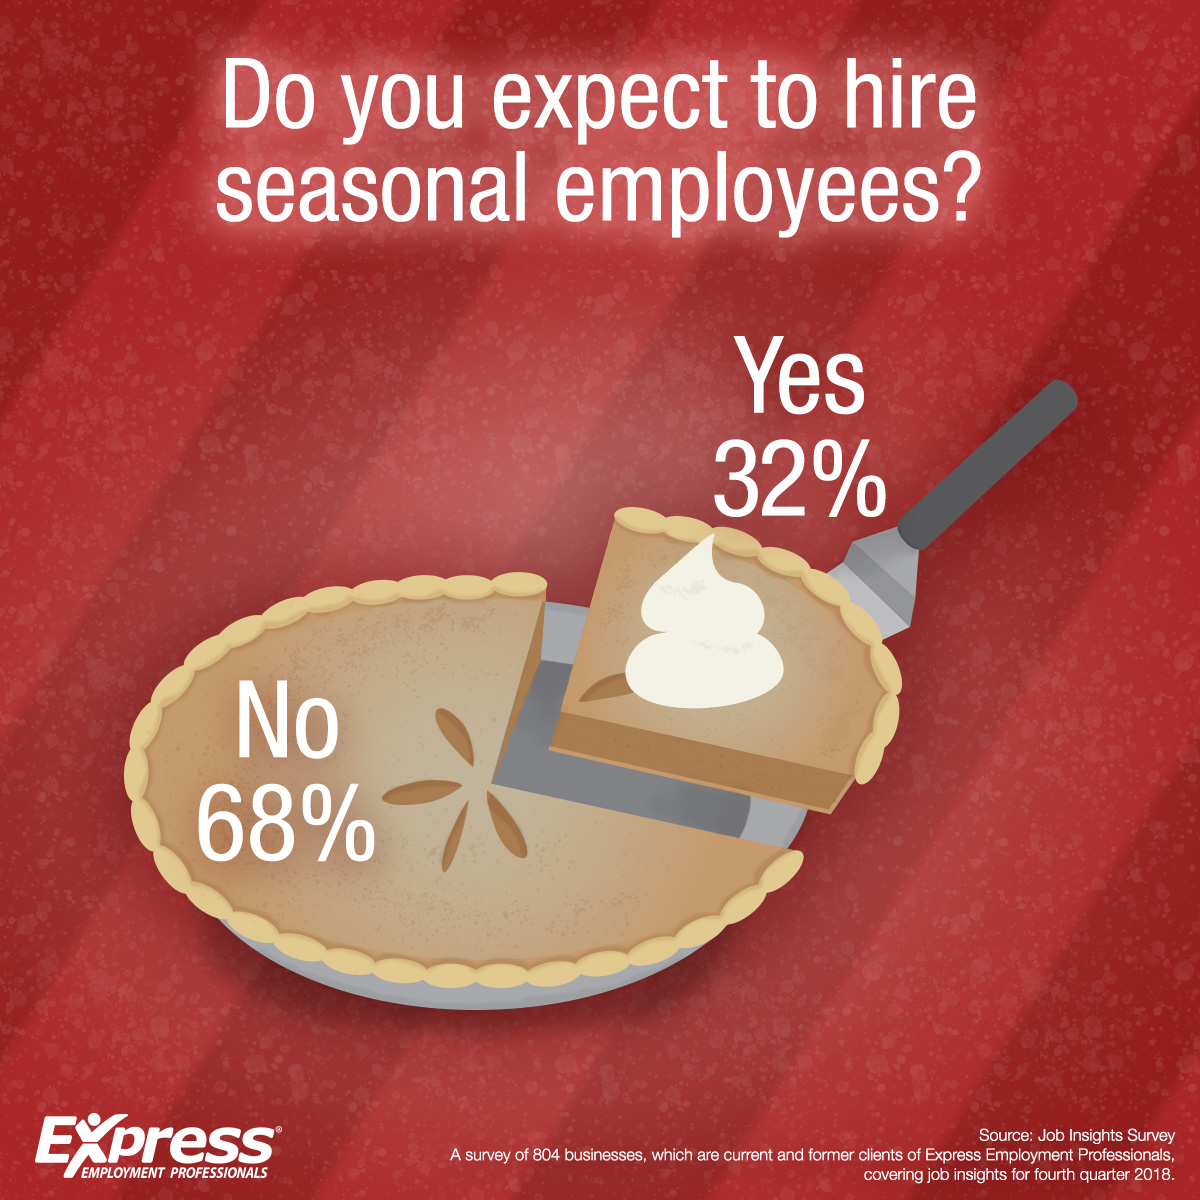 More Seasonal Hiring This Year in Many Parts of Canada